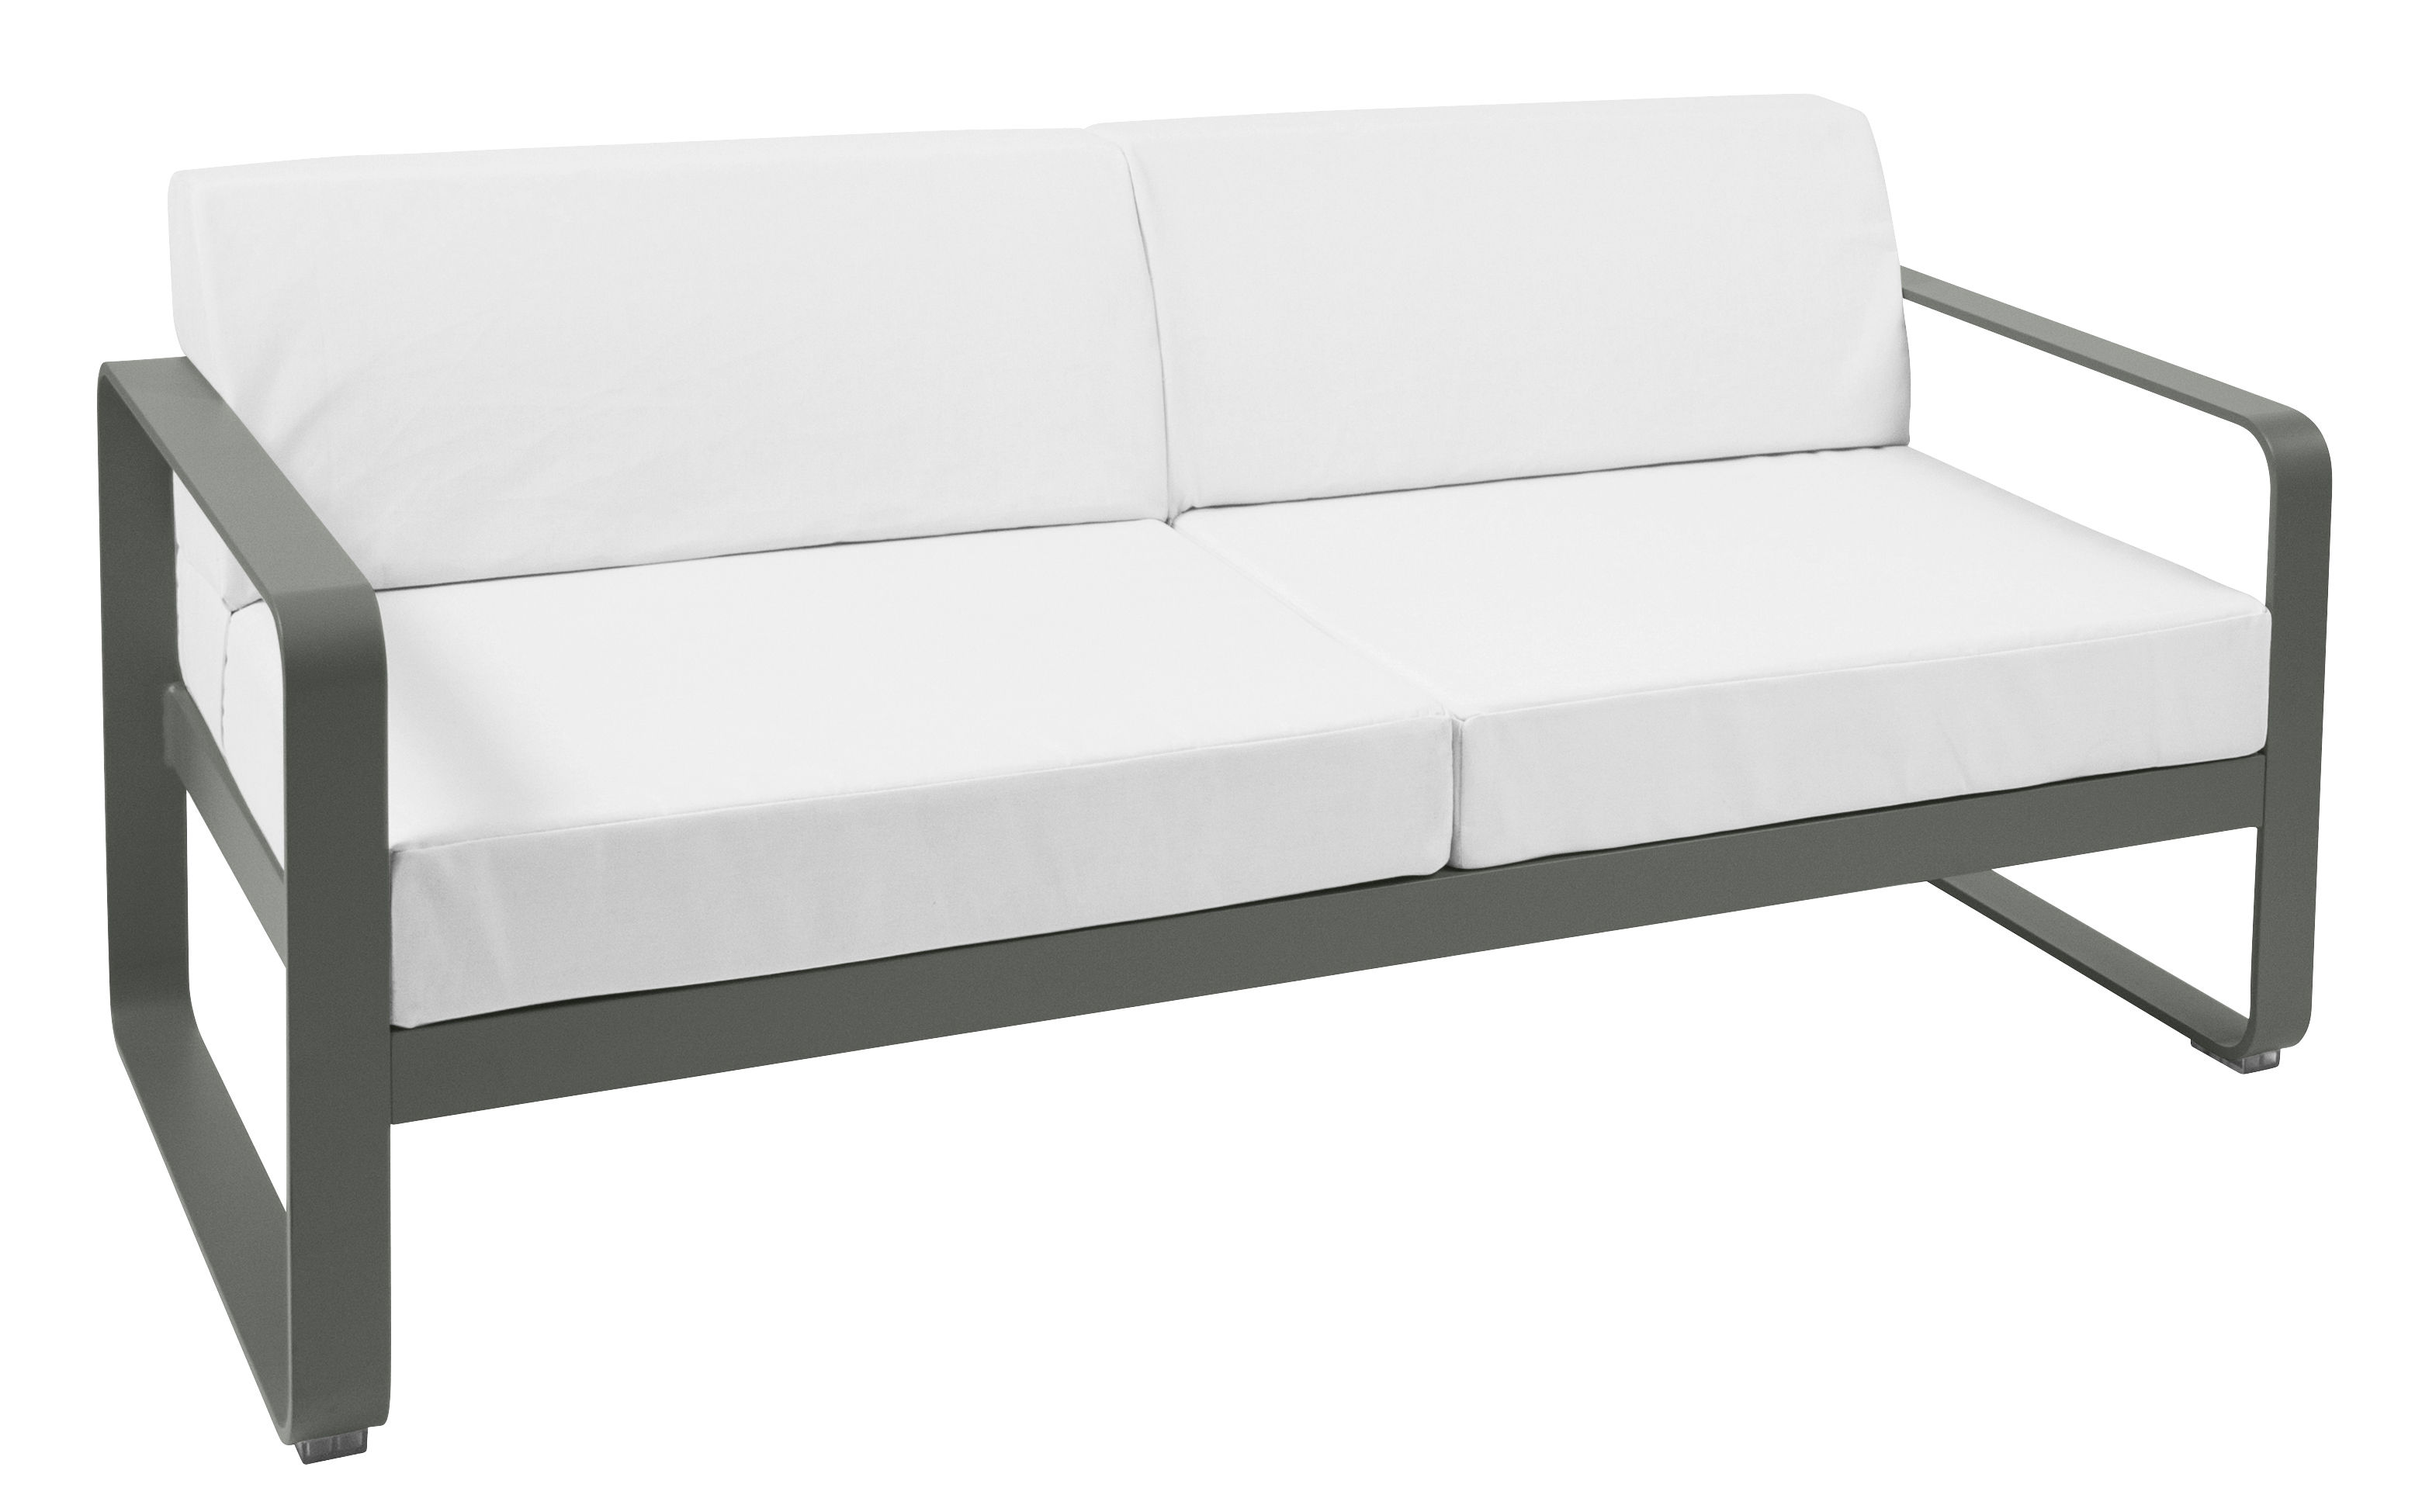 Bellevie Straight Sofa W 160 Cm Rosemary By Fermob